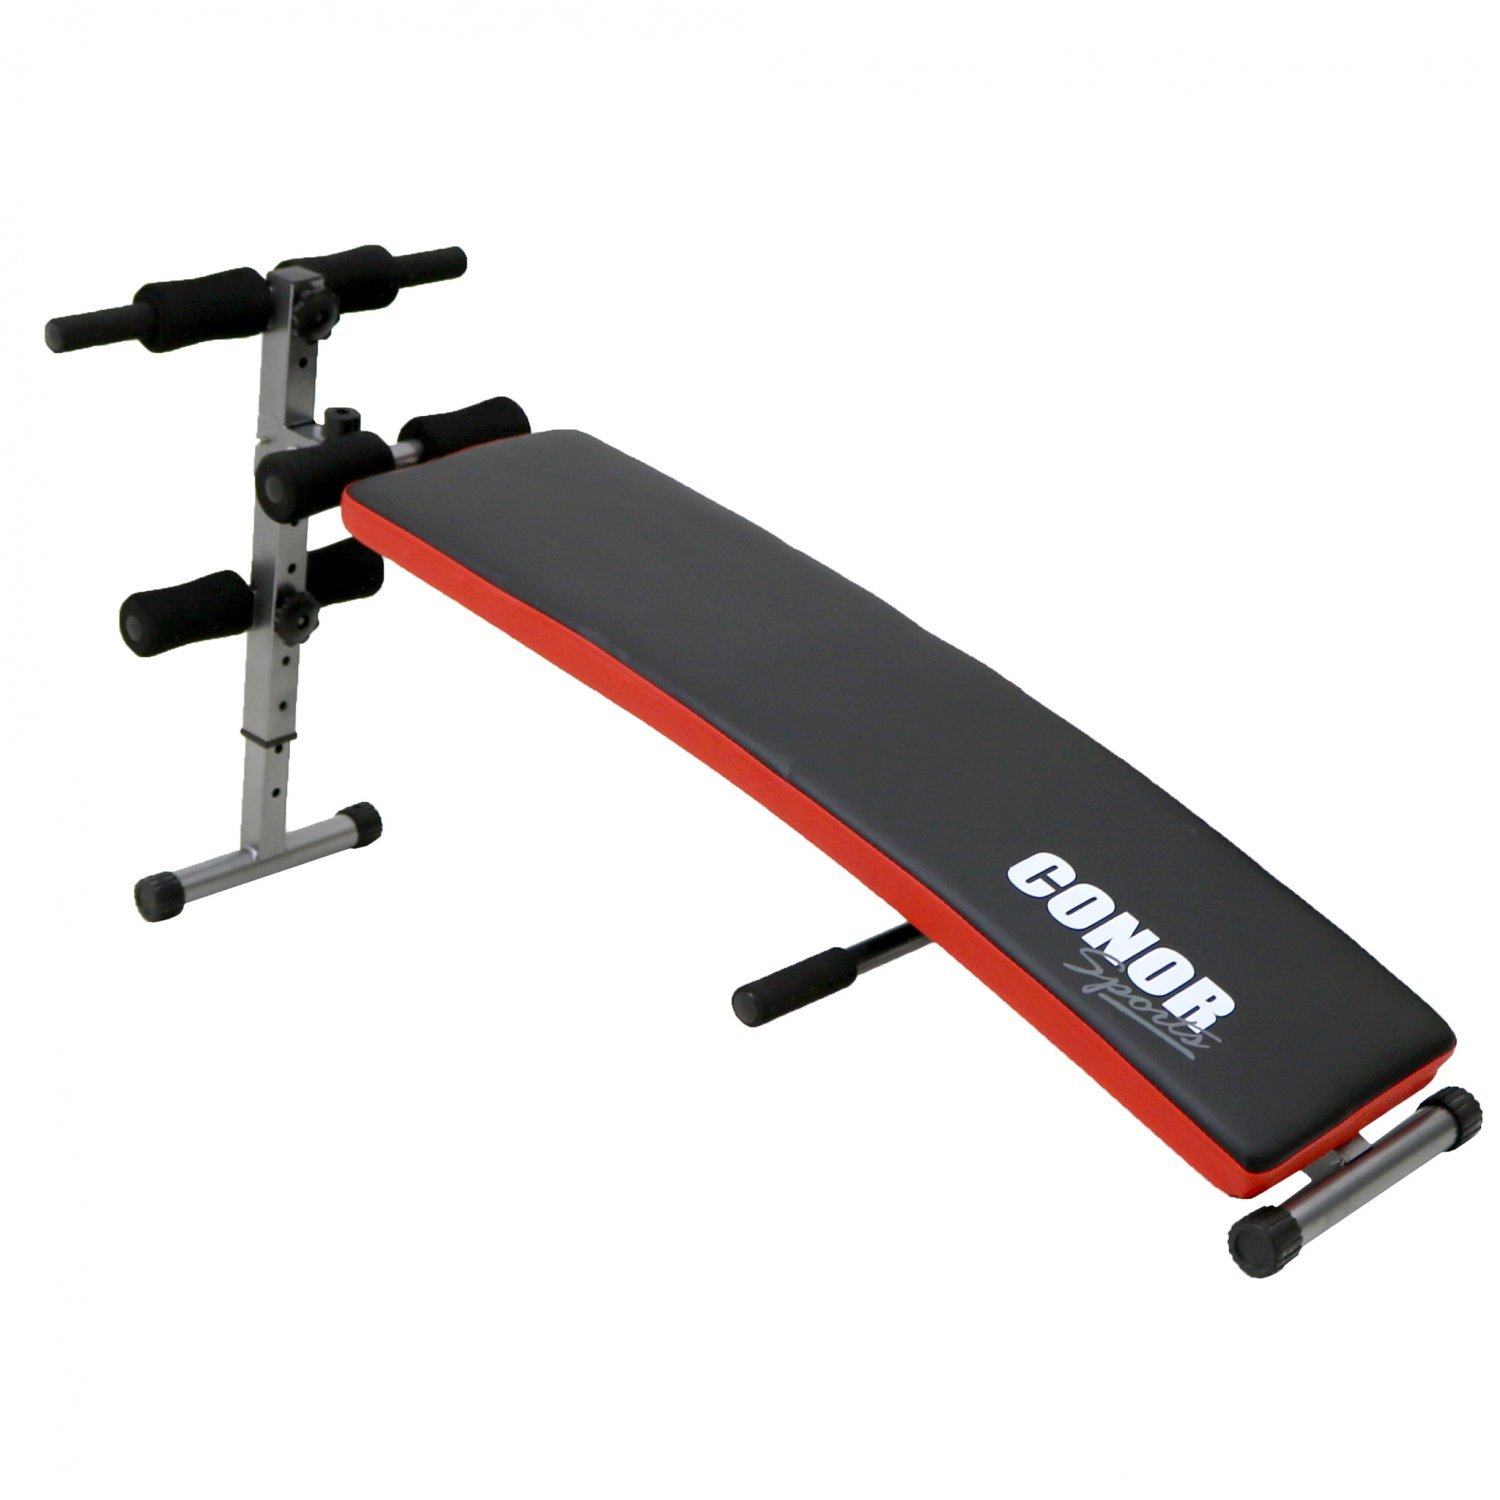 Conor Sports Folding Sit Up Ab Bench 163 39 99 Oypla Stocking The Very Best In Toys